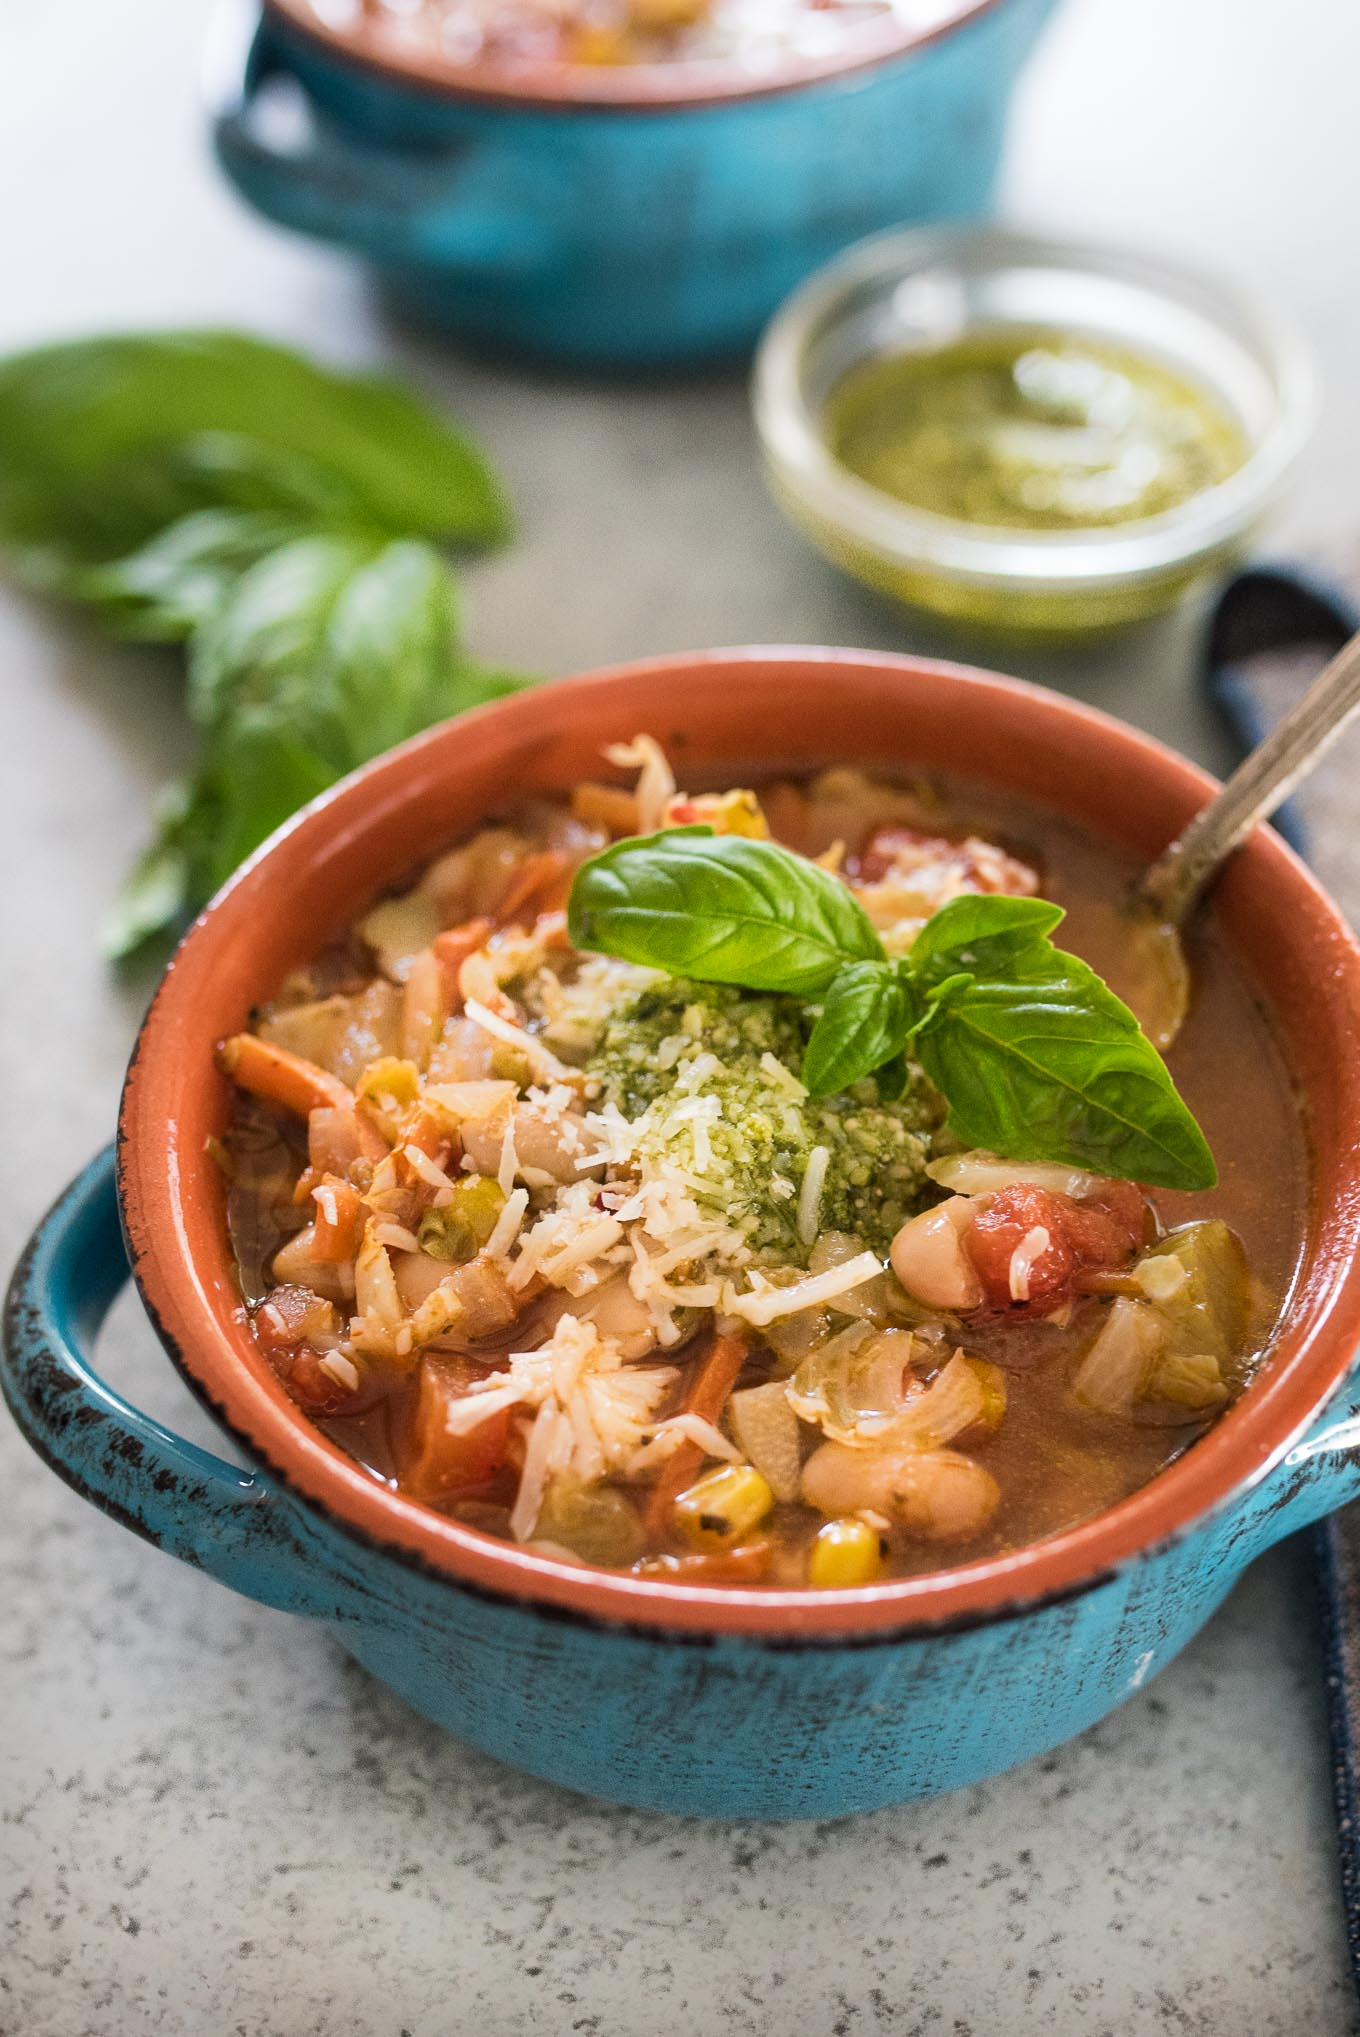 Quick and Easy Vegetable Soup with Pesto will nourish you from the inside out and will use up all those last bits of vegetables reducing waste in your kitchen.